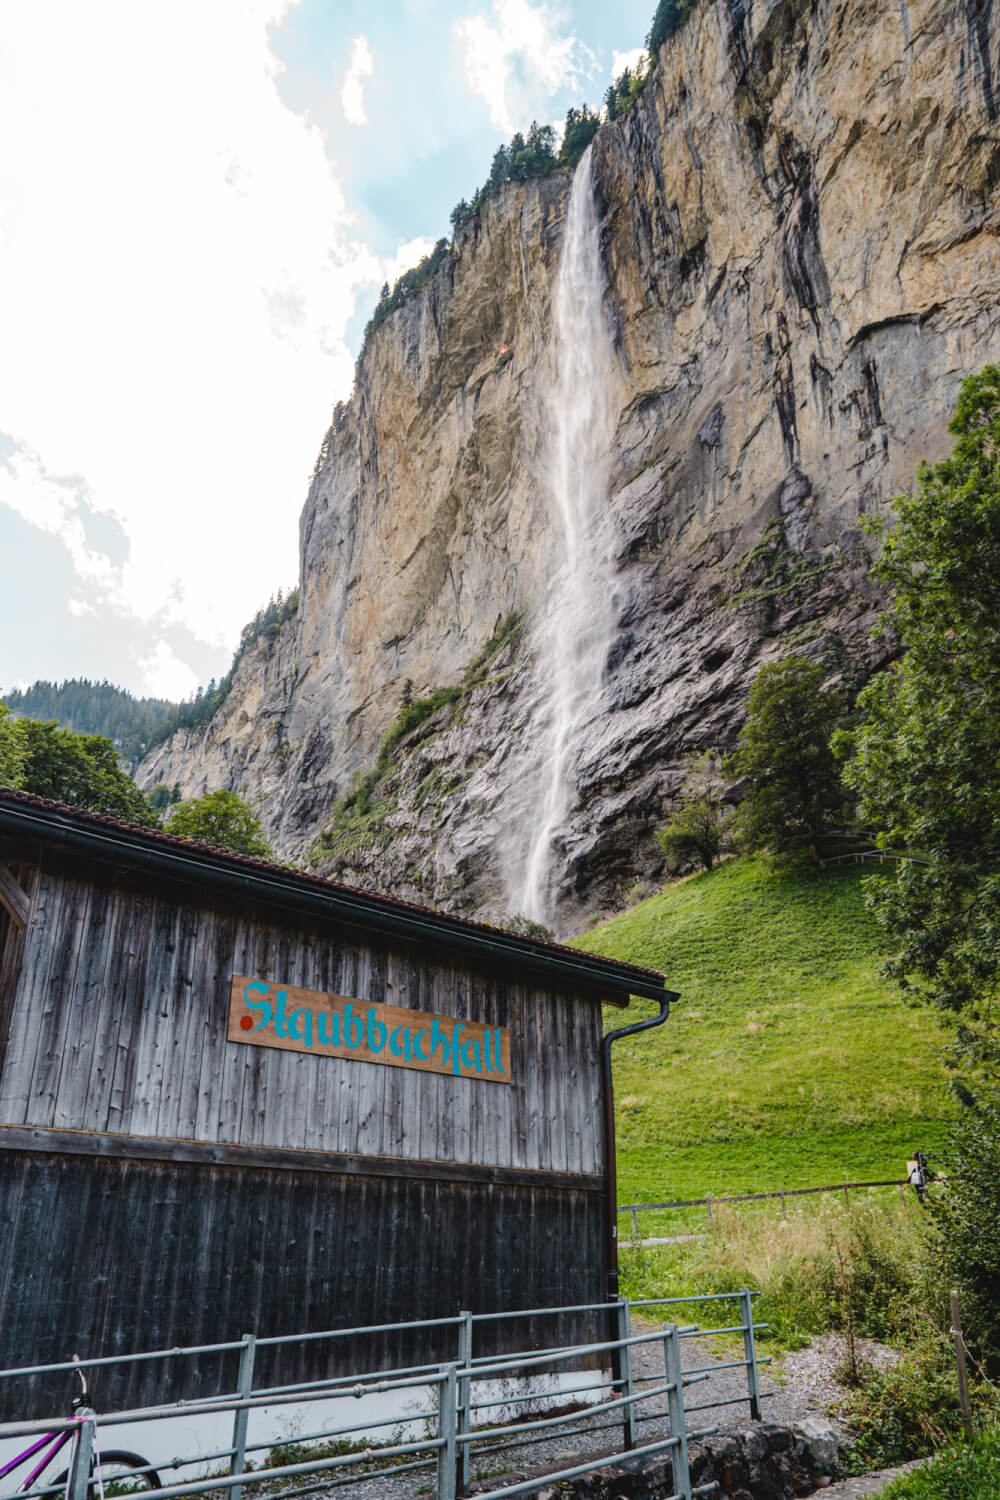 Beautiful view of Staubbachfall in Lauterbrunnen, Switzerland.